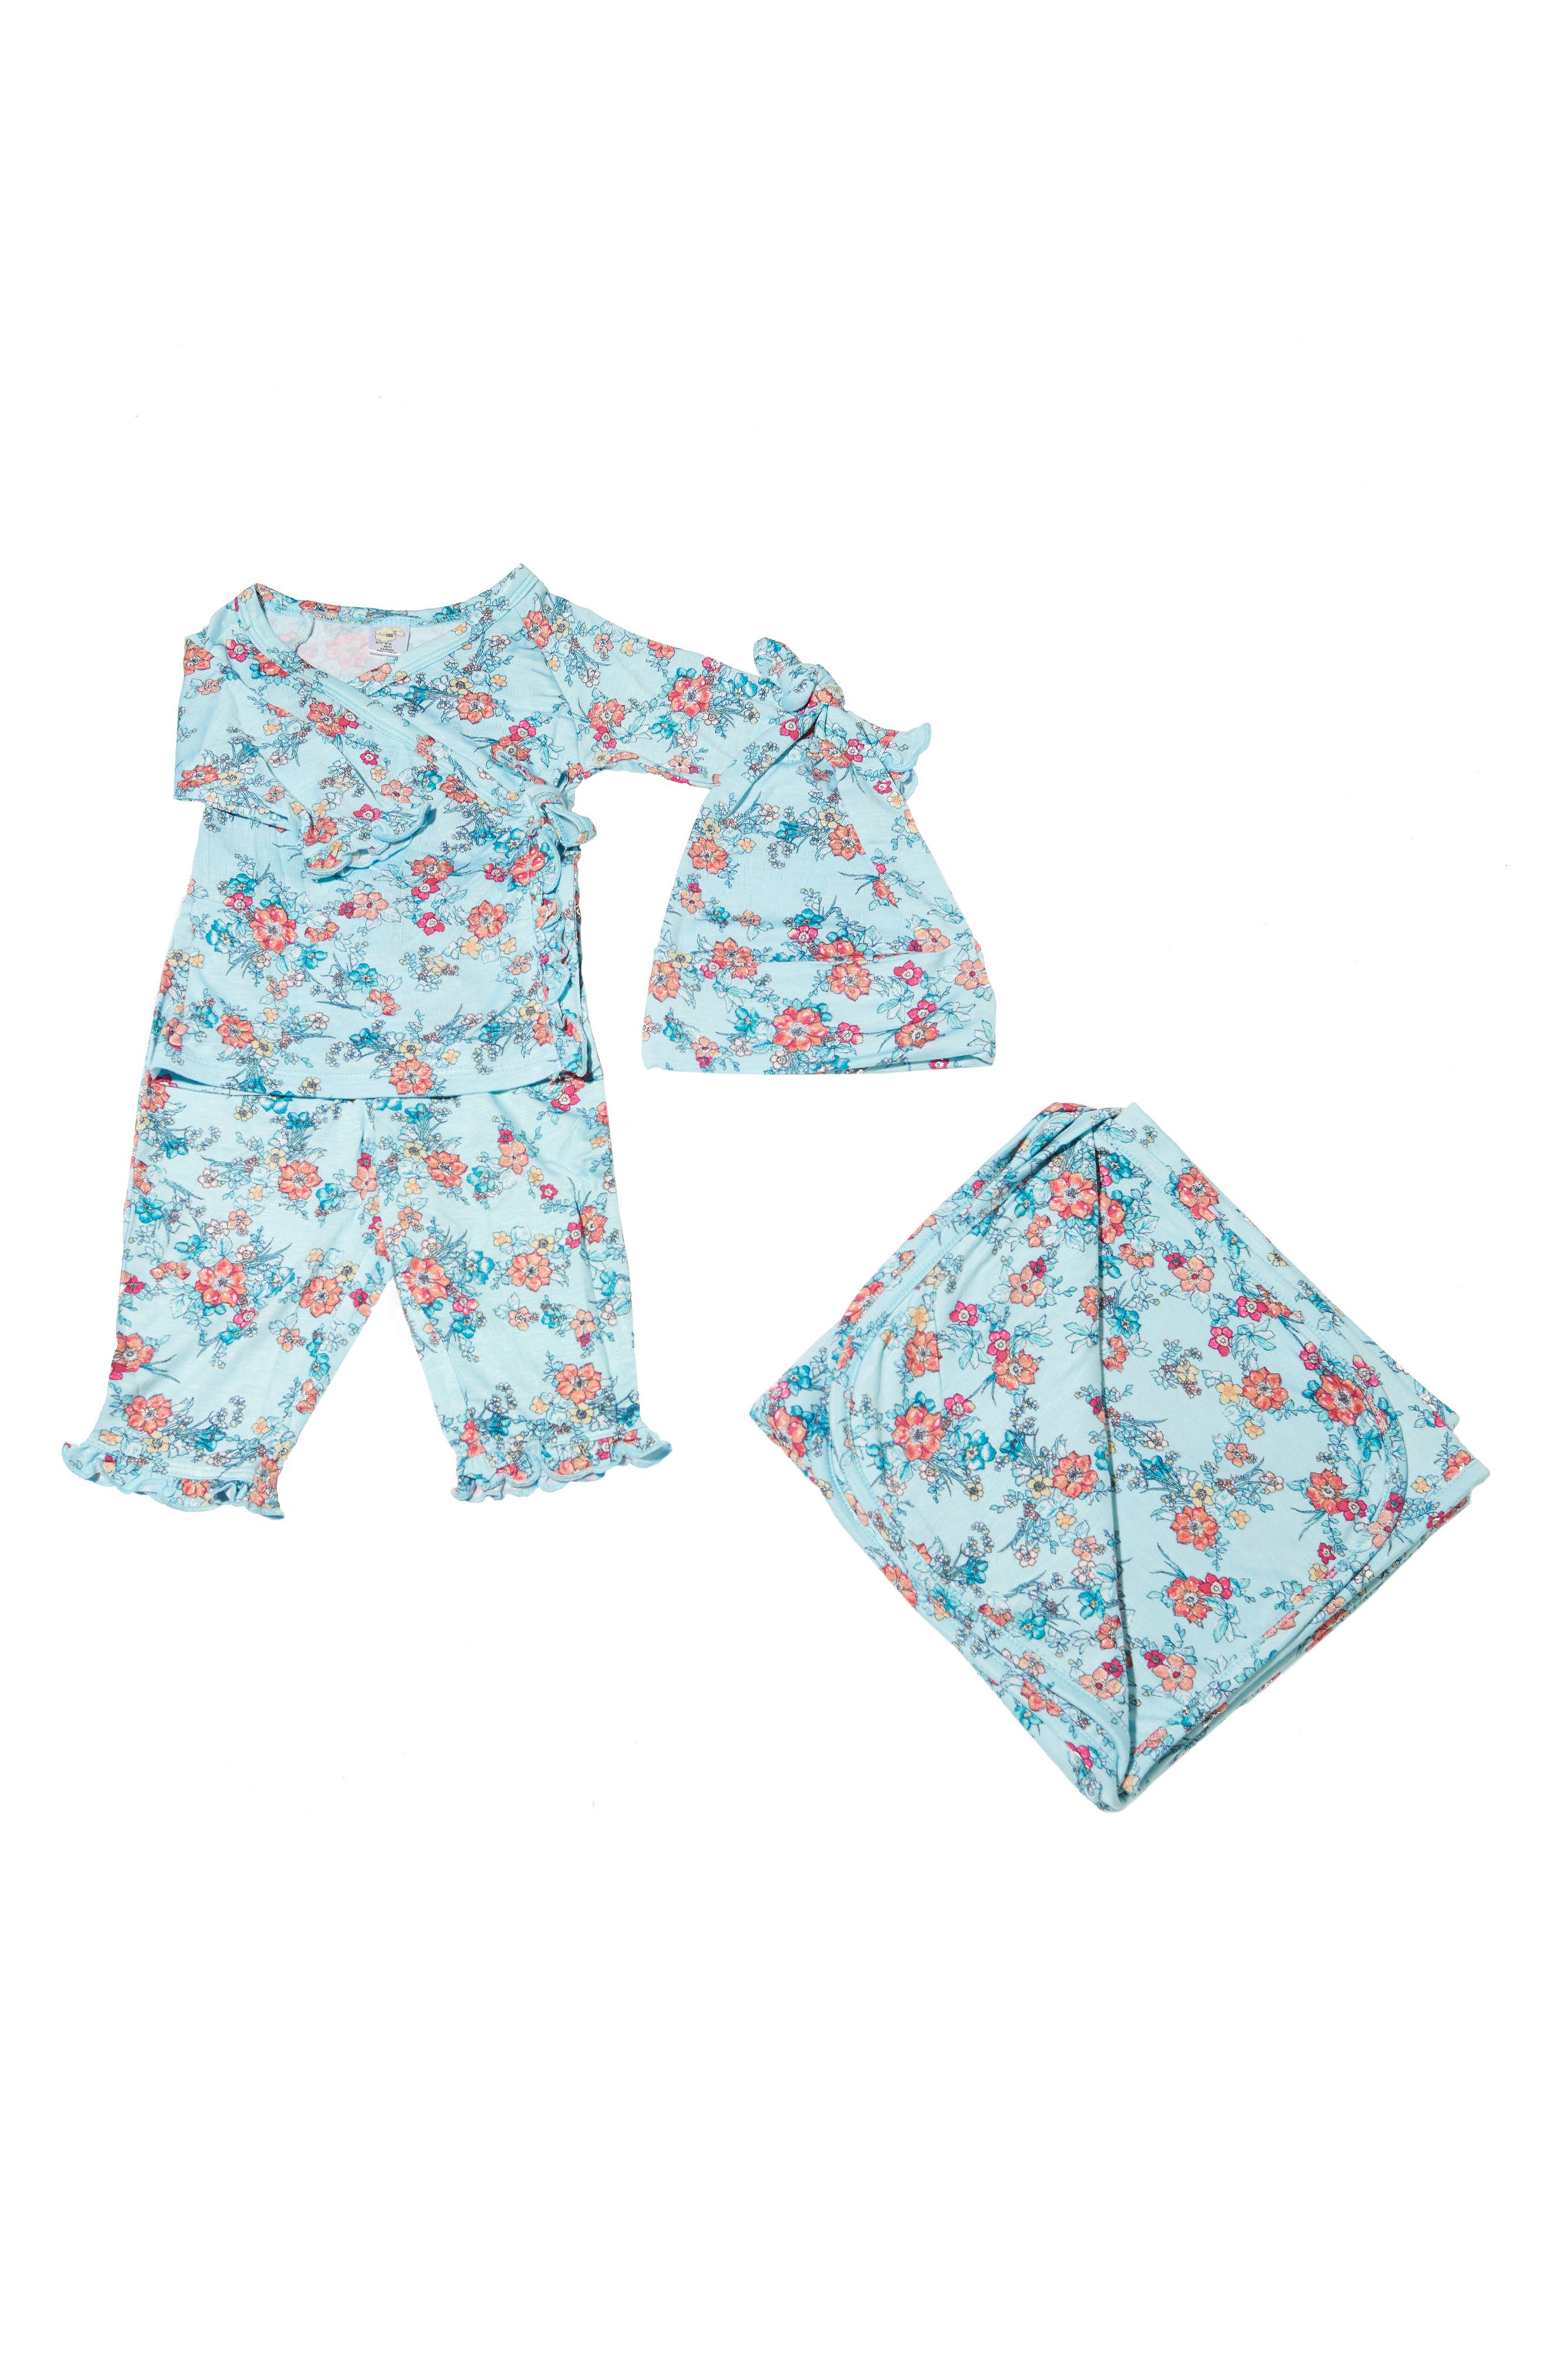 Baby Grey Ruffle Kimono Top, Pants, Hat & Blanket Set (Baby Girls)